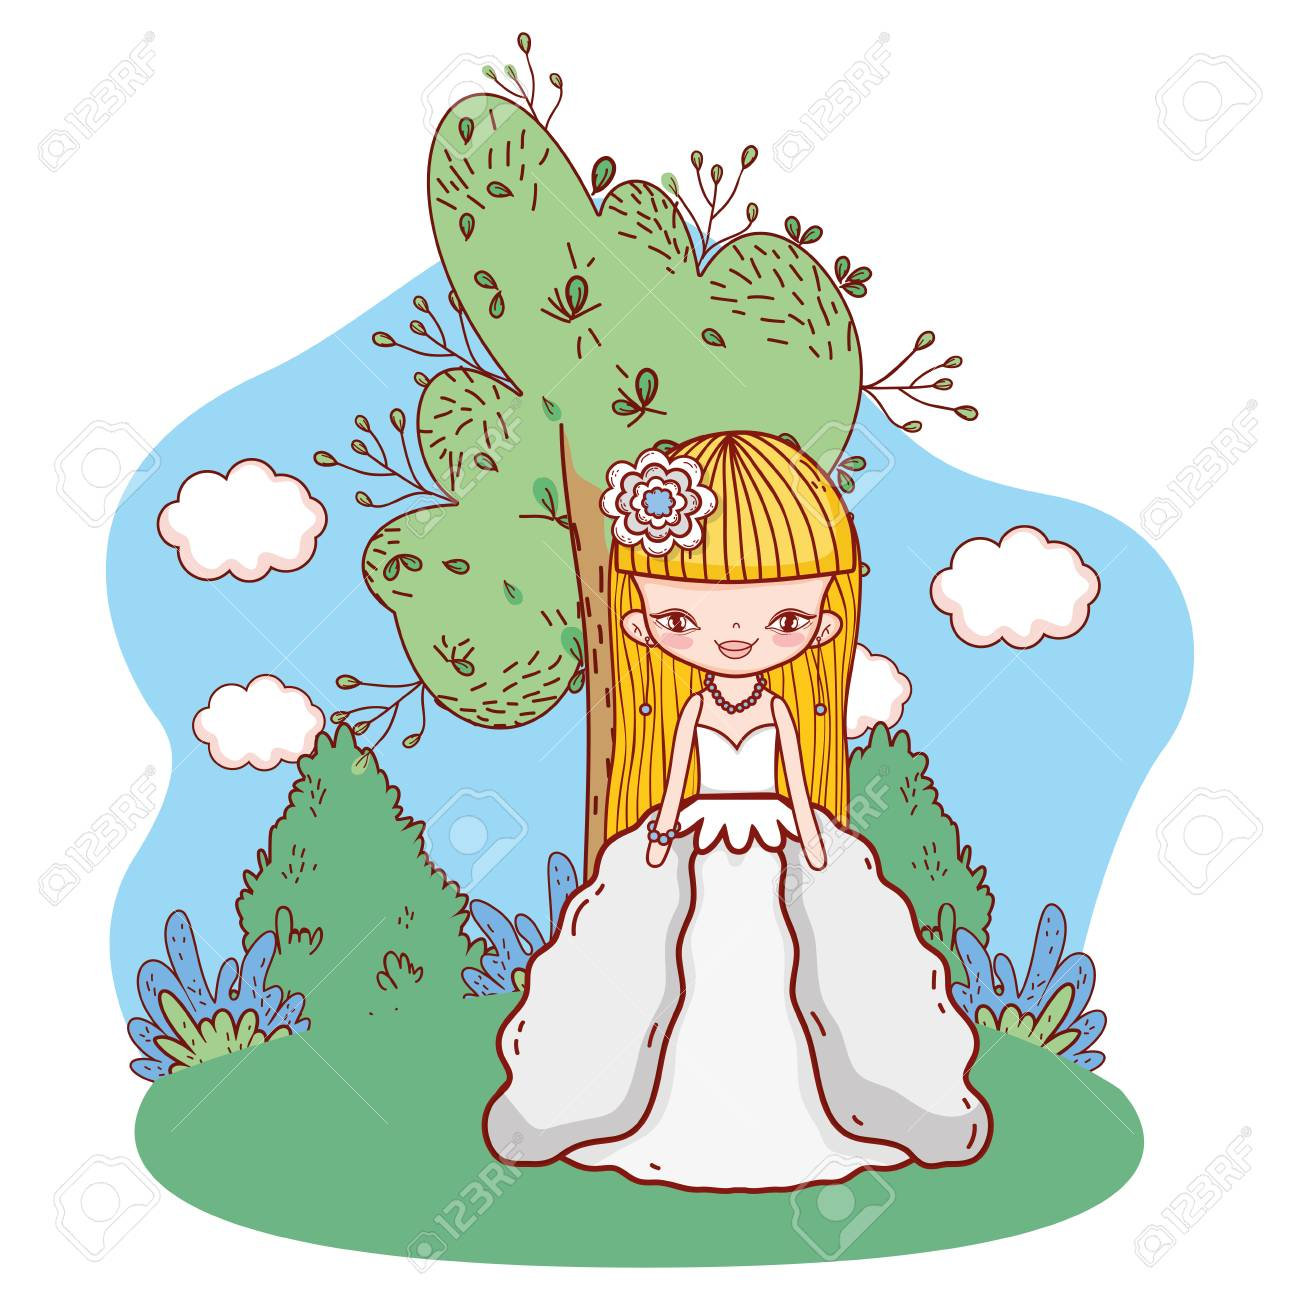 Young Bride Outdoors Landscape Scenery With Tree And Clouds Cartoon Royalty Free Cliparts Vectors And Stock Illustration Image 111427619 As you can see, this chart shows cartoons and those who worked on them. 123rf com